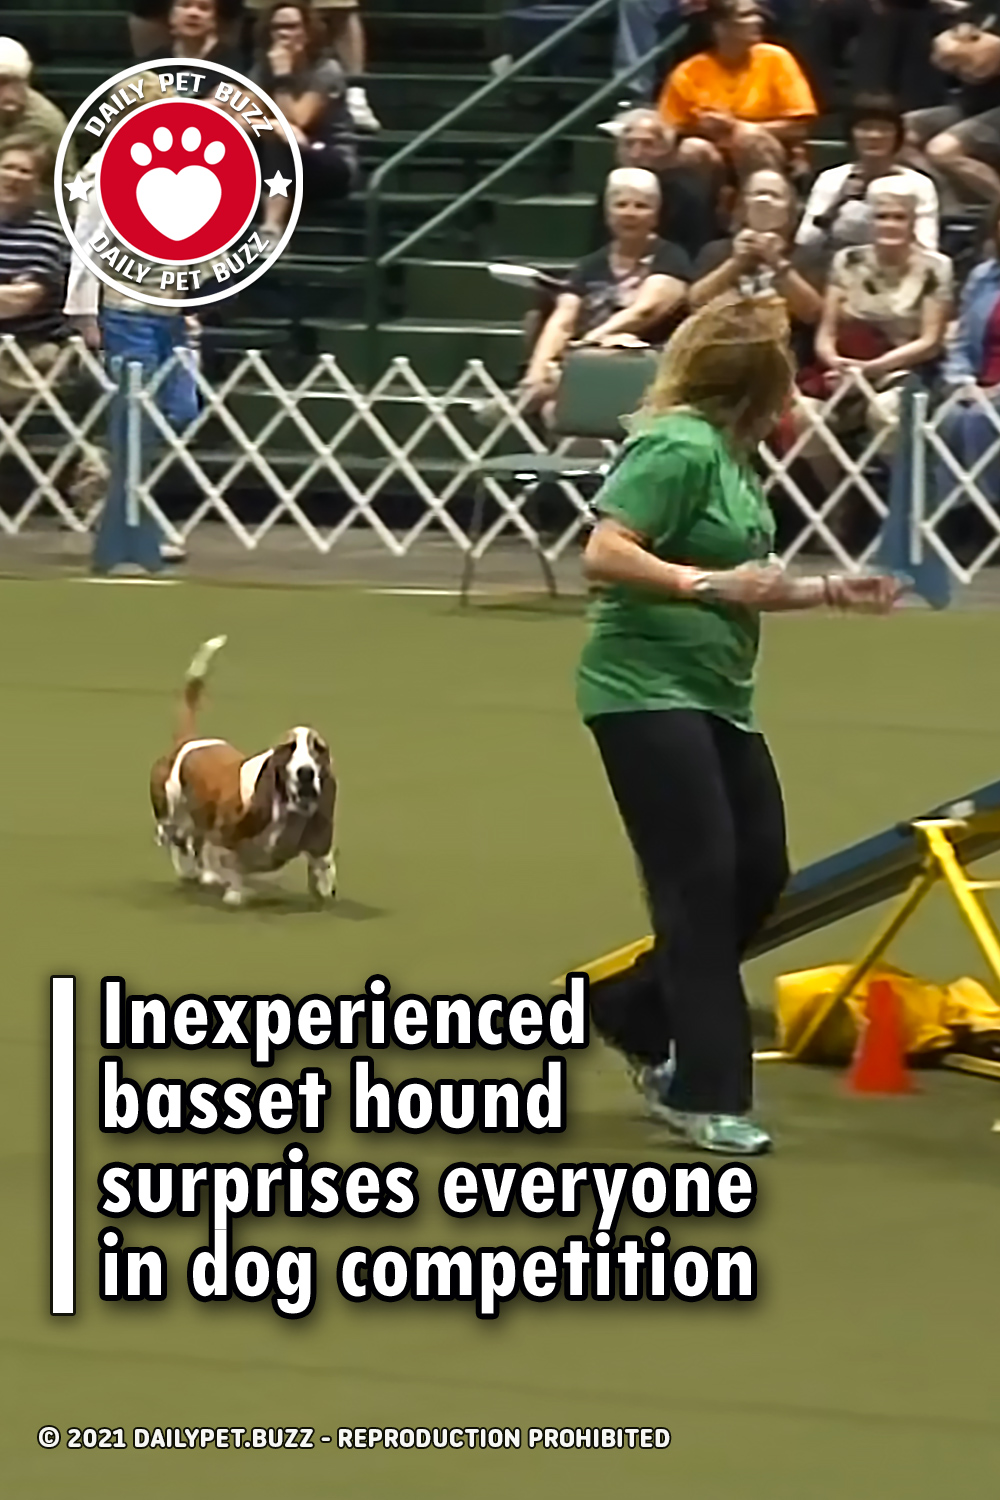 Inexperienced basset hound surprises everyone in dog competition